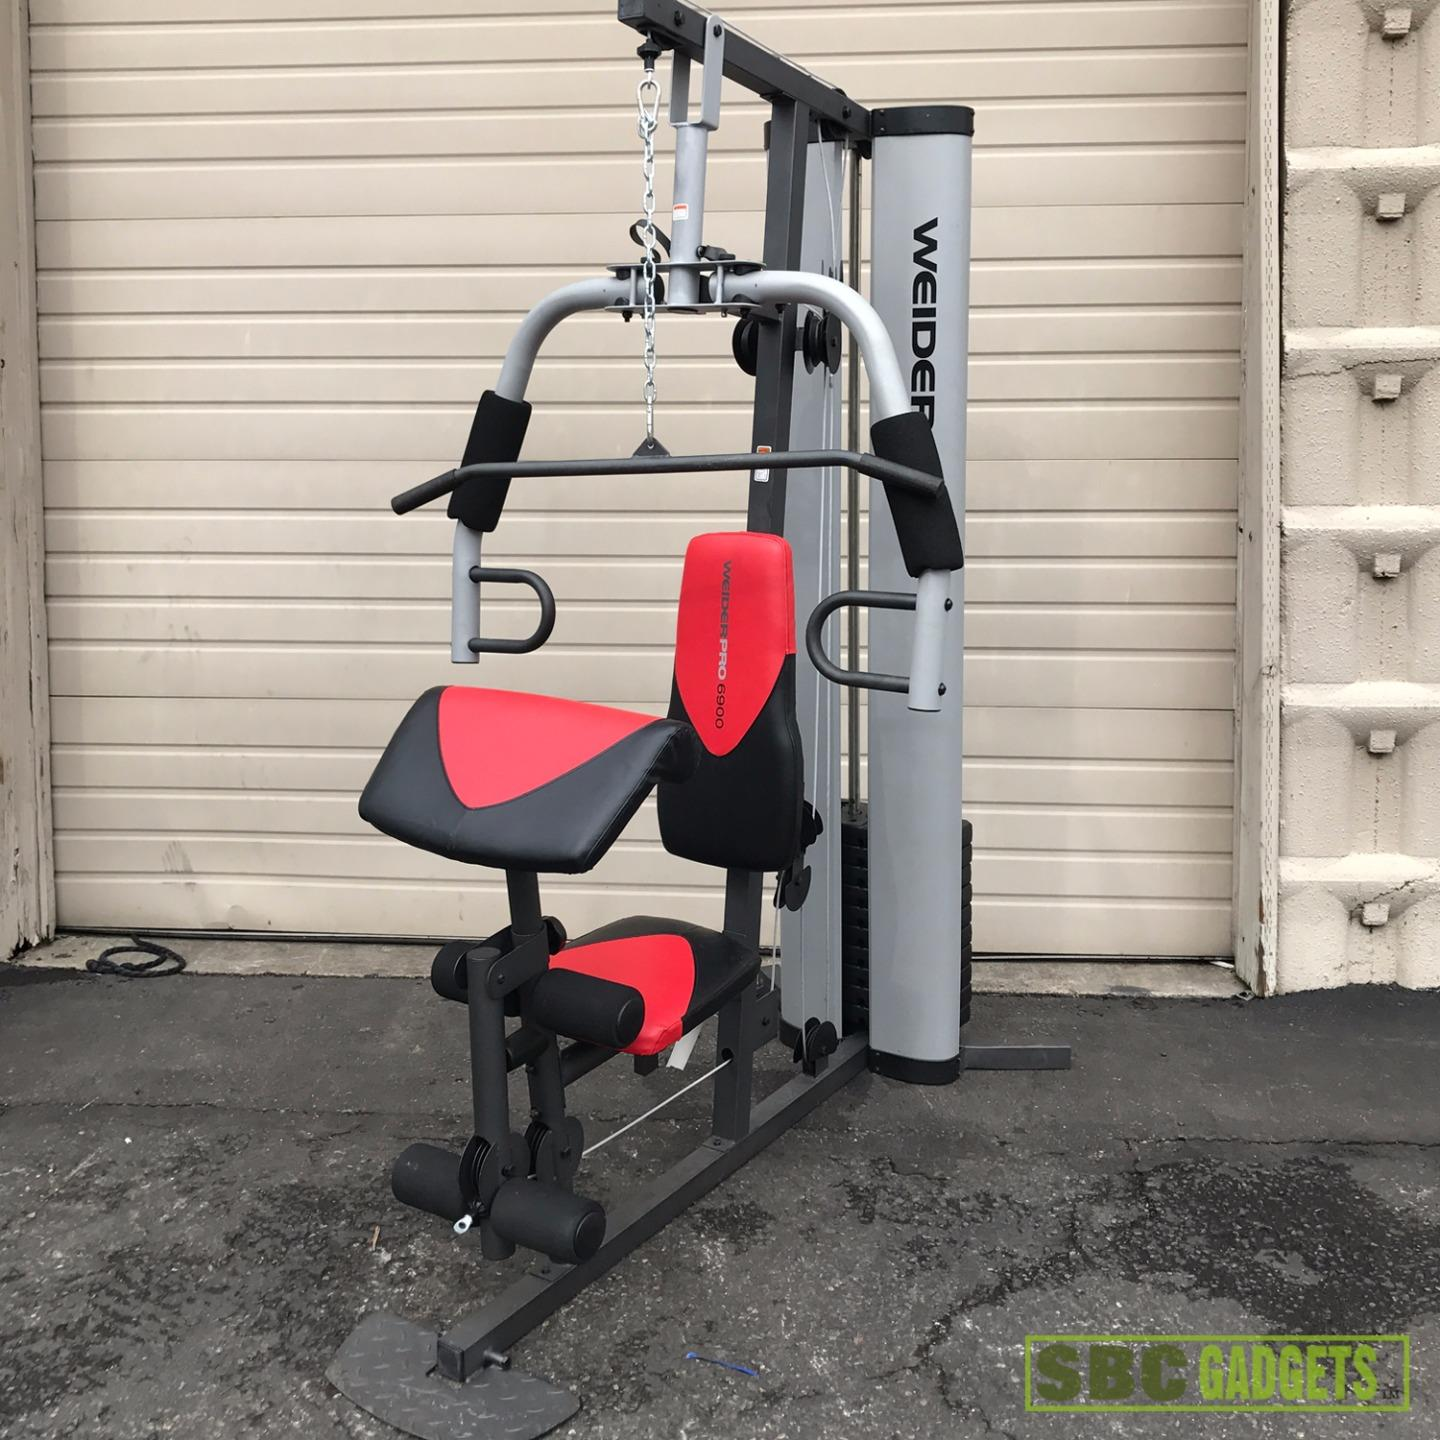 Weider Home Gym Instructions: Weider Pro 6900 Workout Fitness Exercise Total Body Home